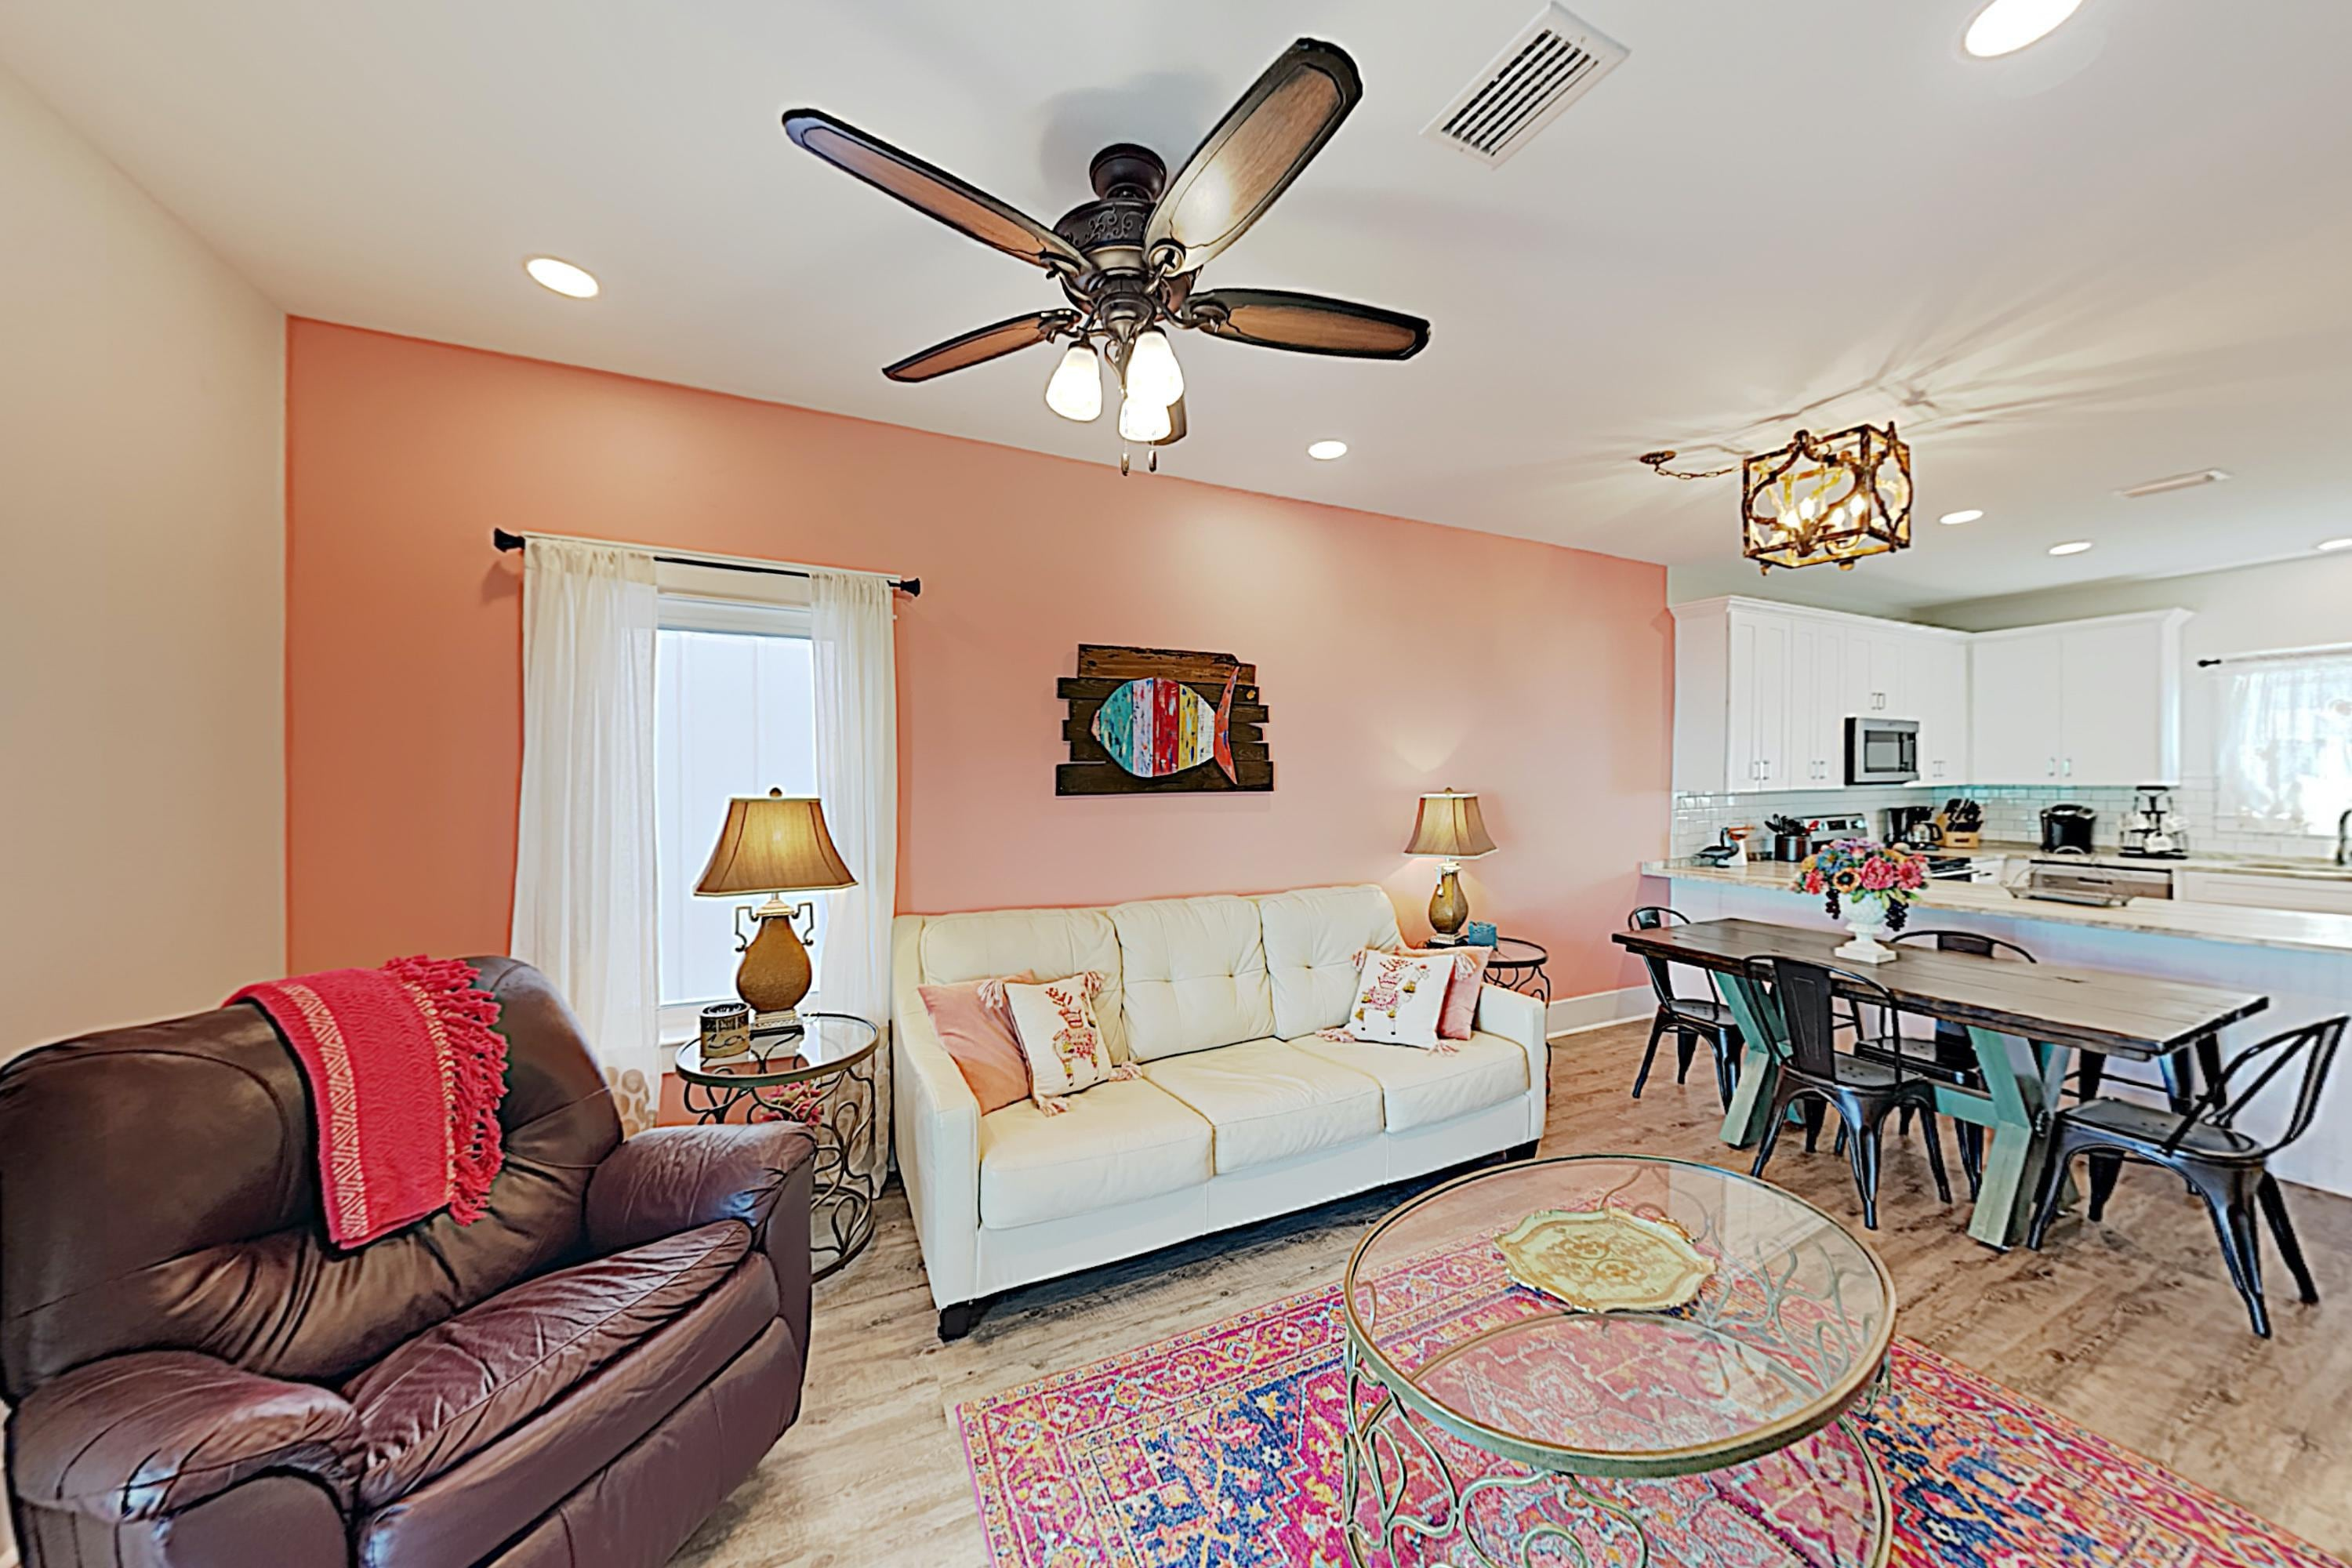 Welcome to Gulf Shores! This townhouse is professionally managed by TurnKey Vacation Rentals.